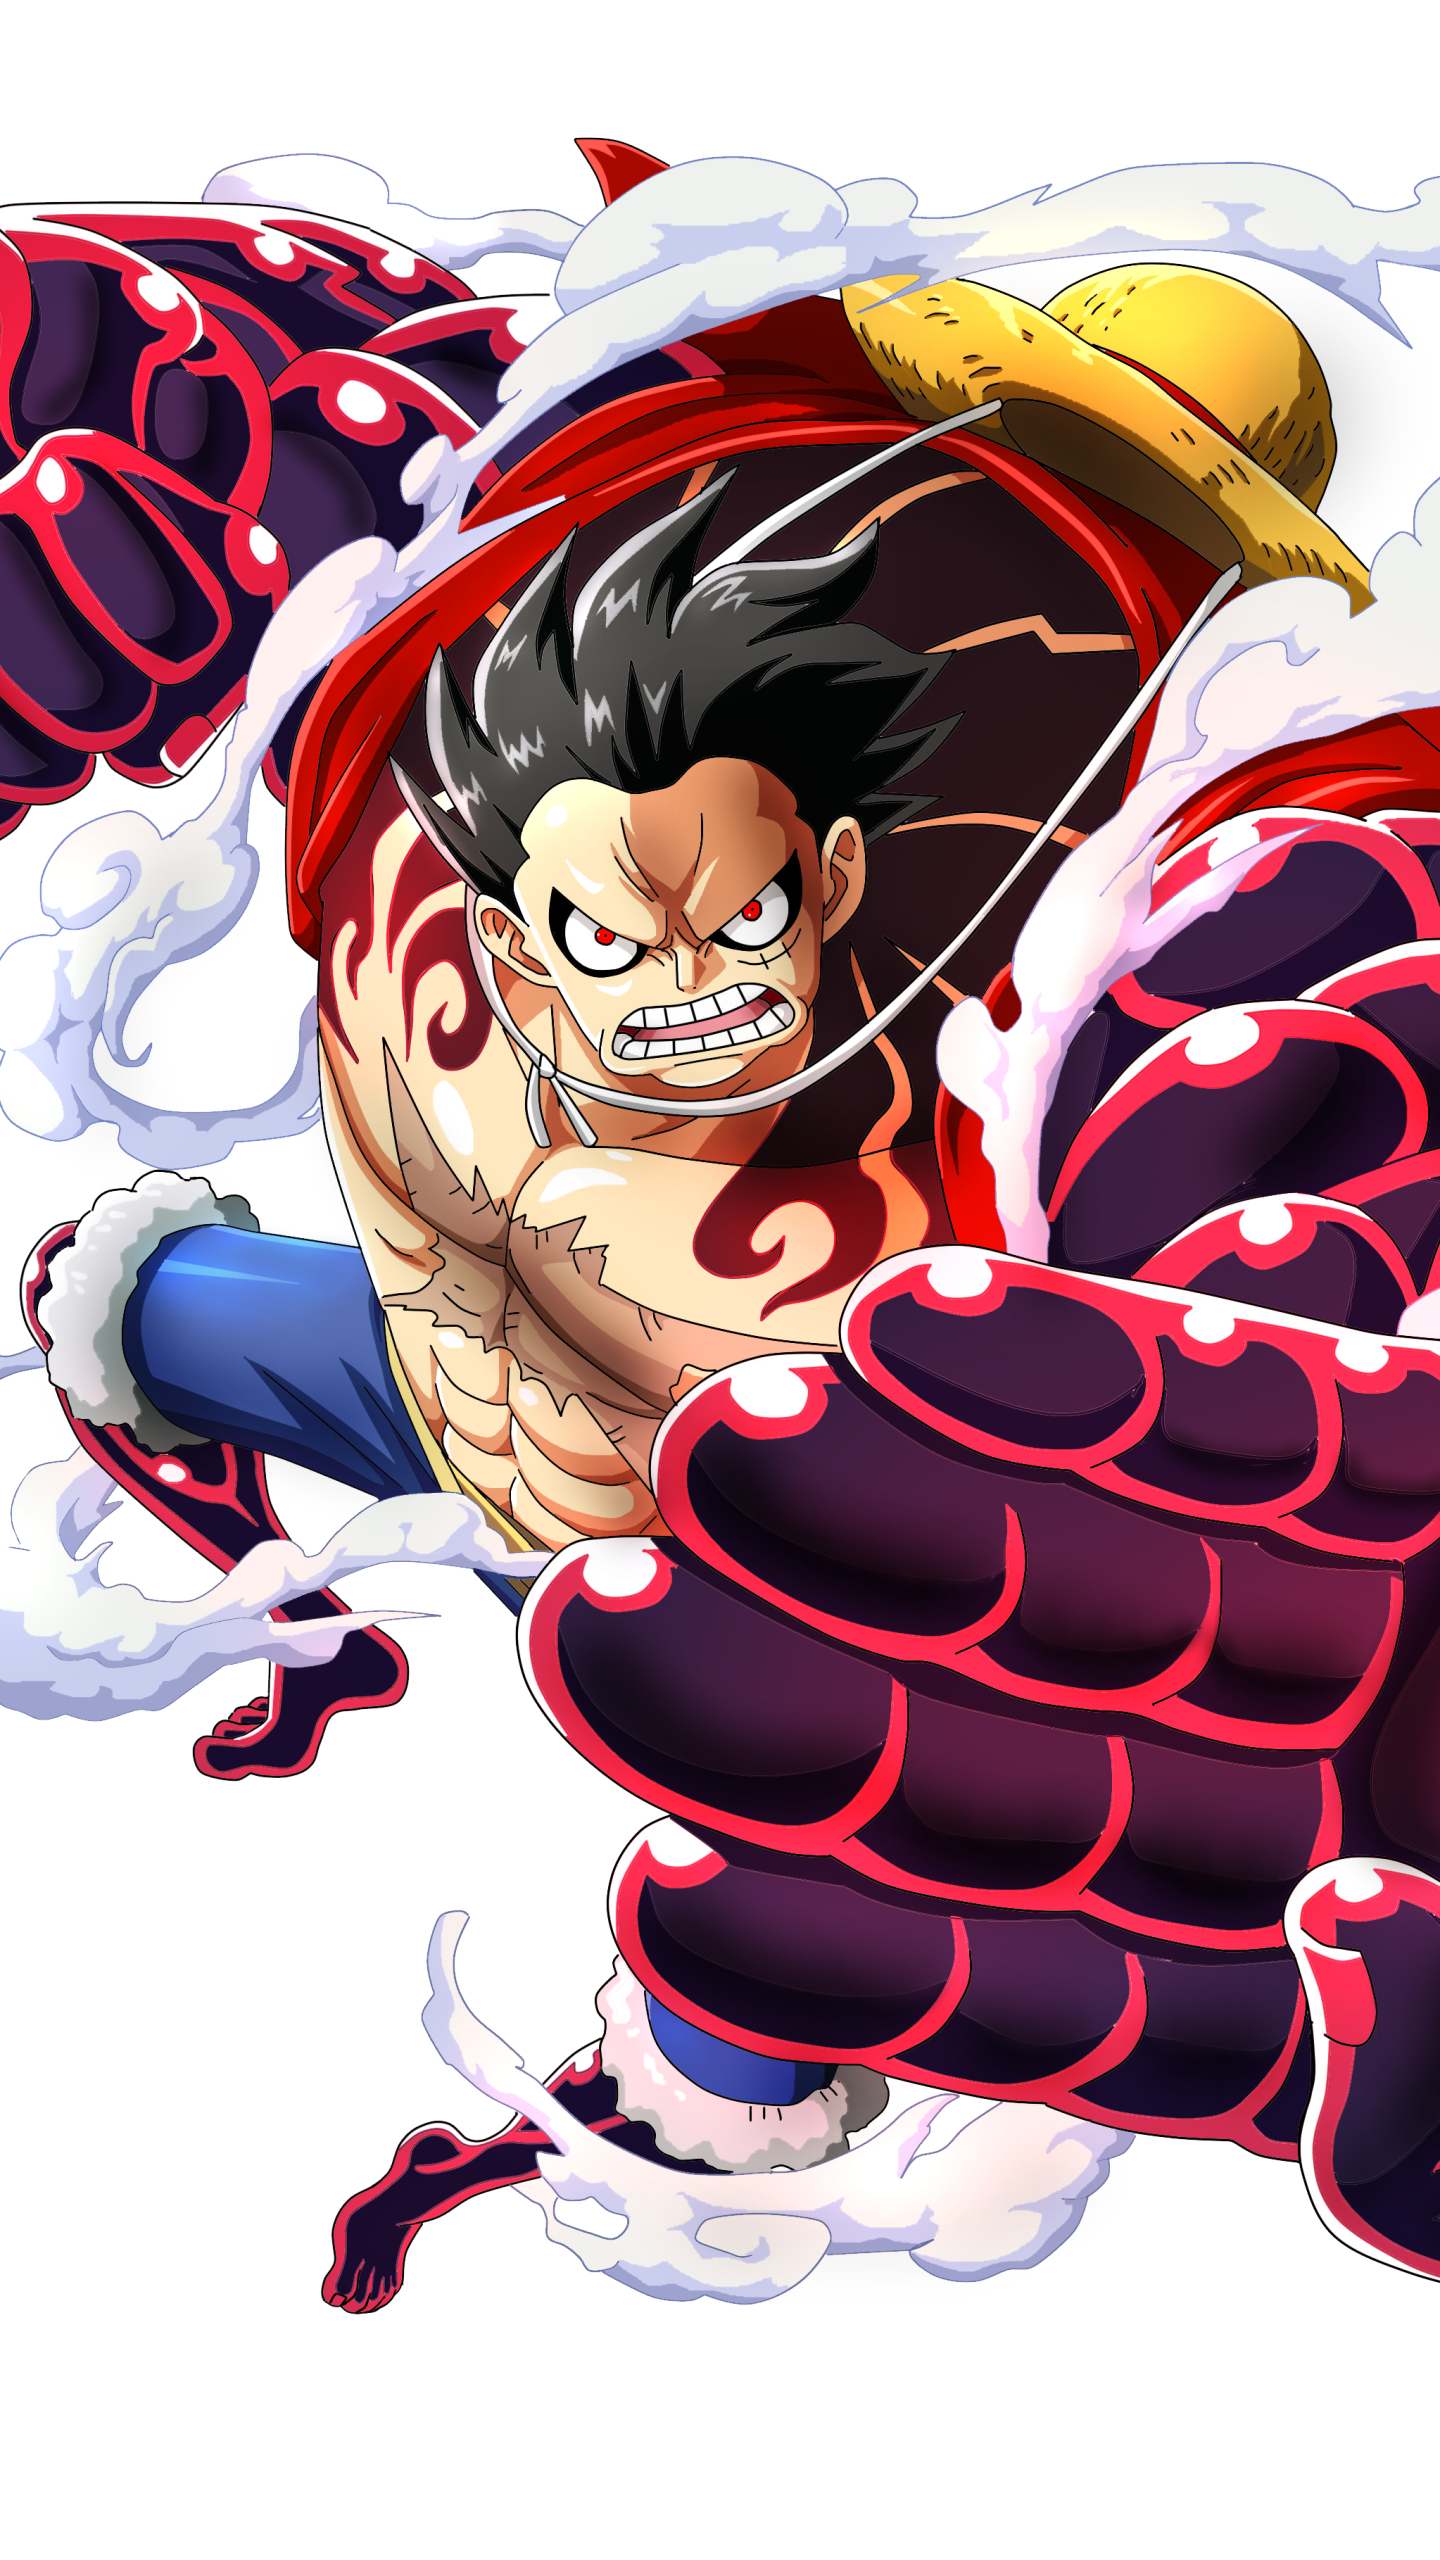 Anime One Piece 1440x2560 Wallpaper Id 688777 Mobile Abyss